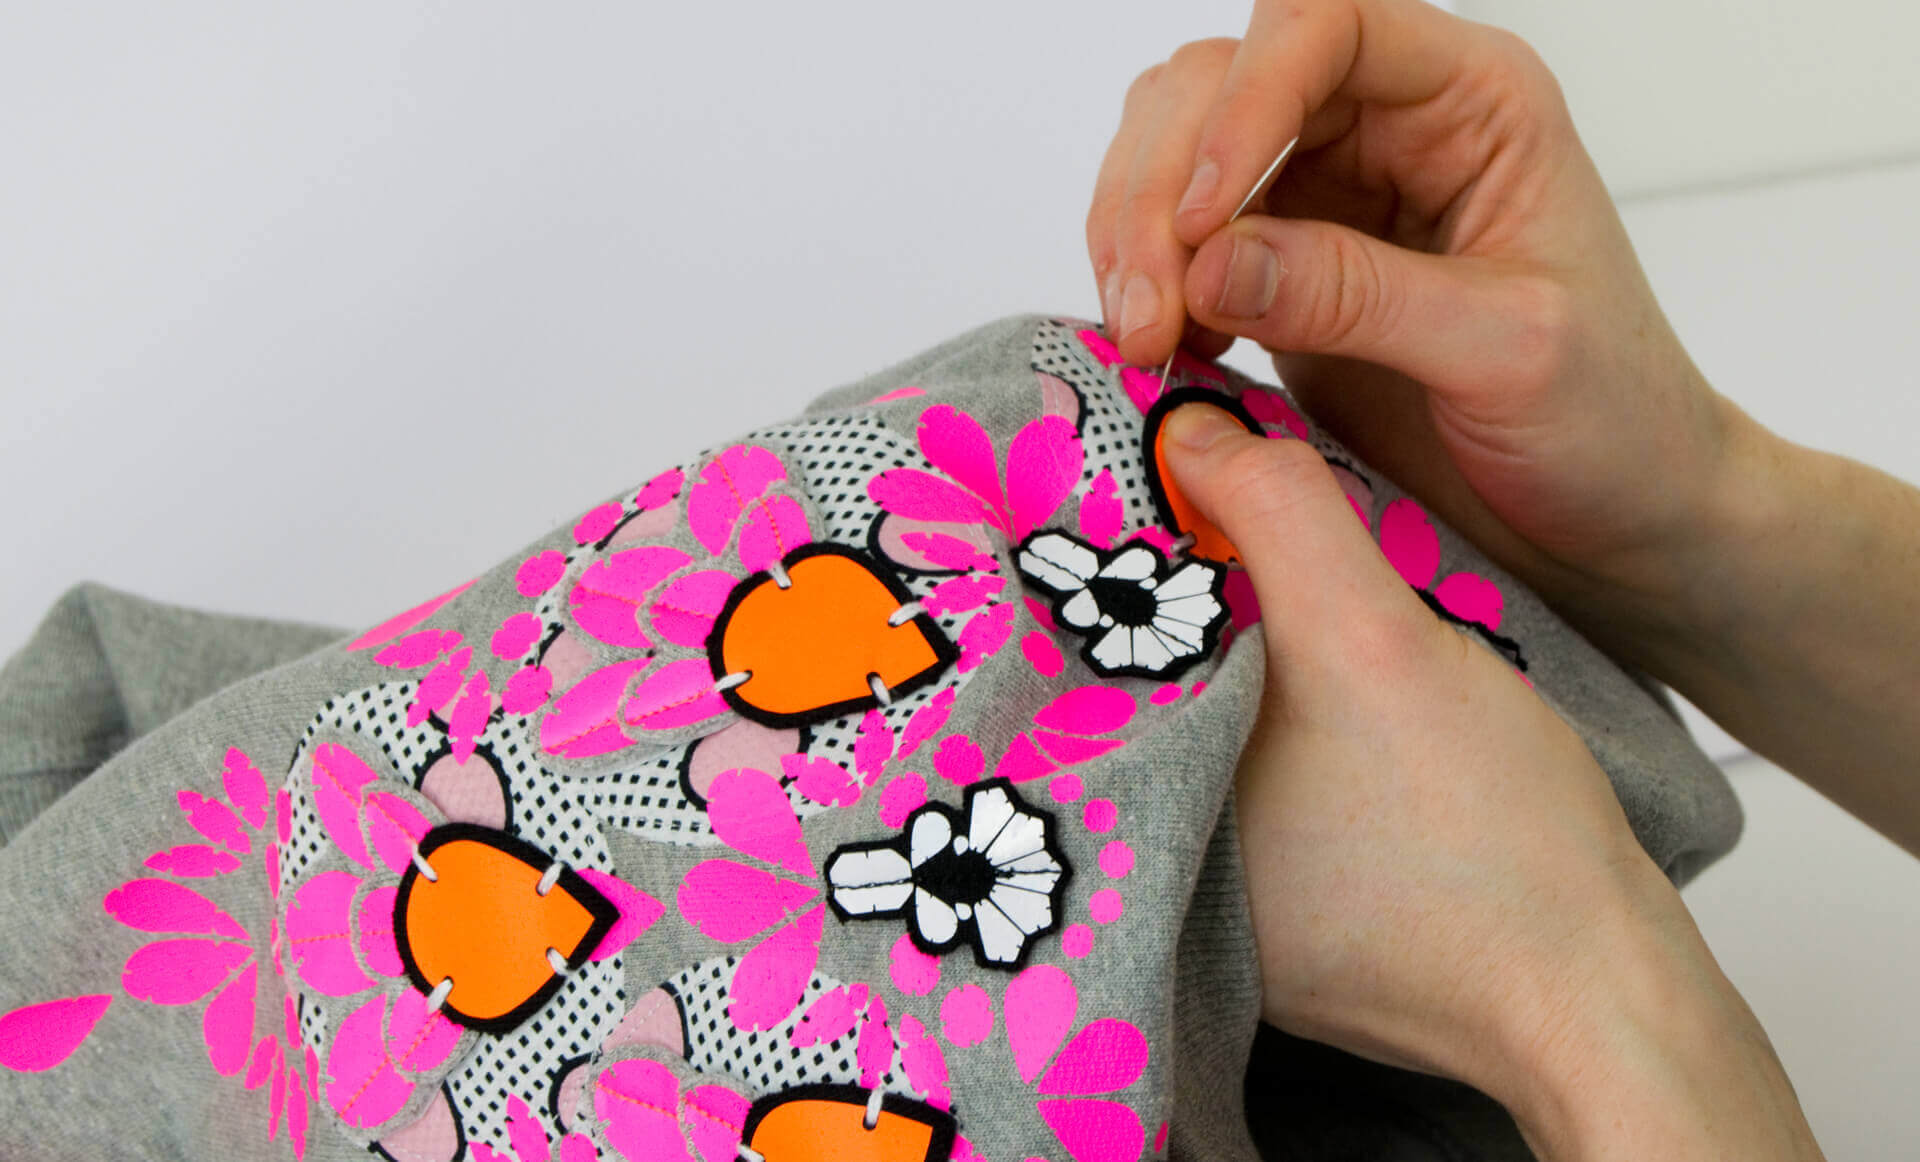 Close up of Bec's hands stitching an orange printed shape to an embellished sweatshirt